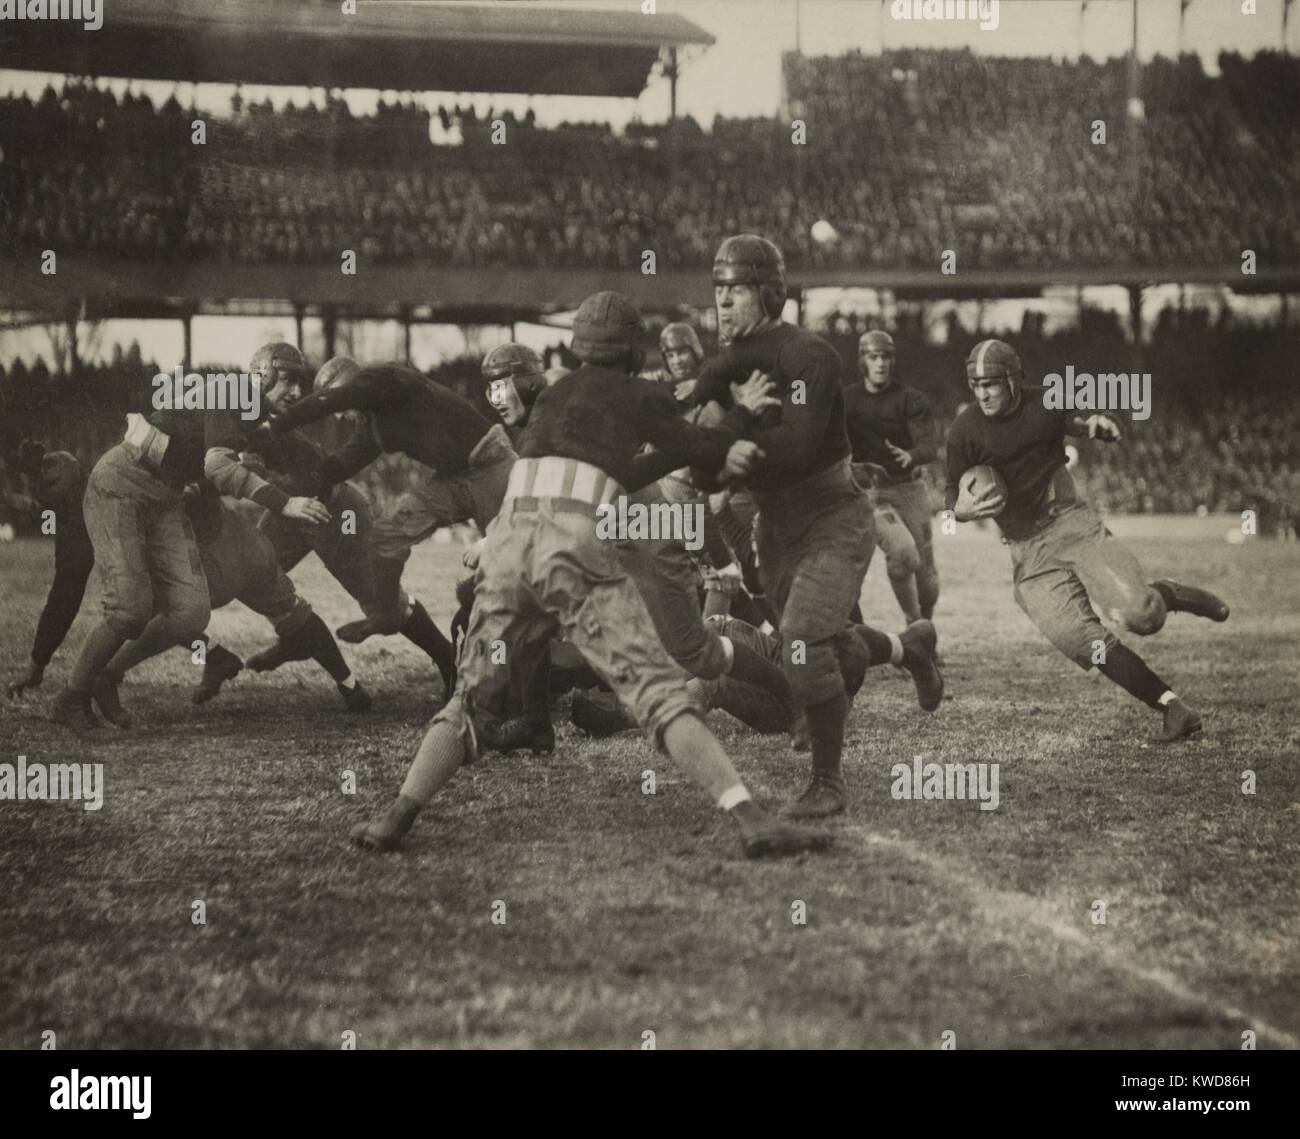 1920s football action. Thousands of spectators watch from double decker stadium seats. (BSLOC_2015_17_125) - Stock Image